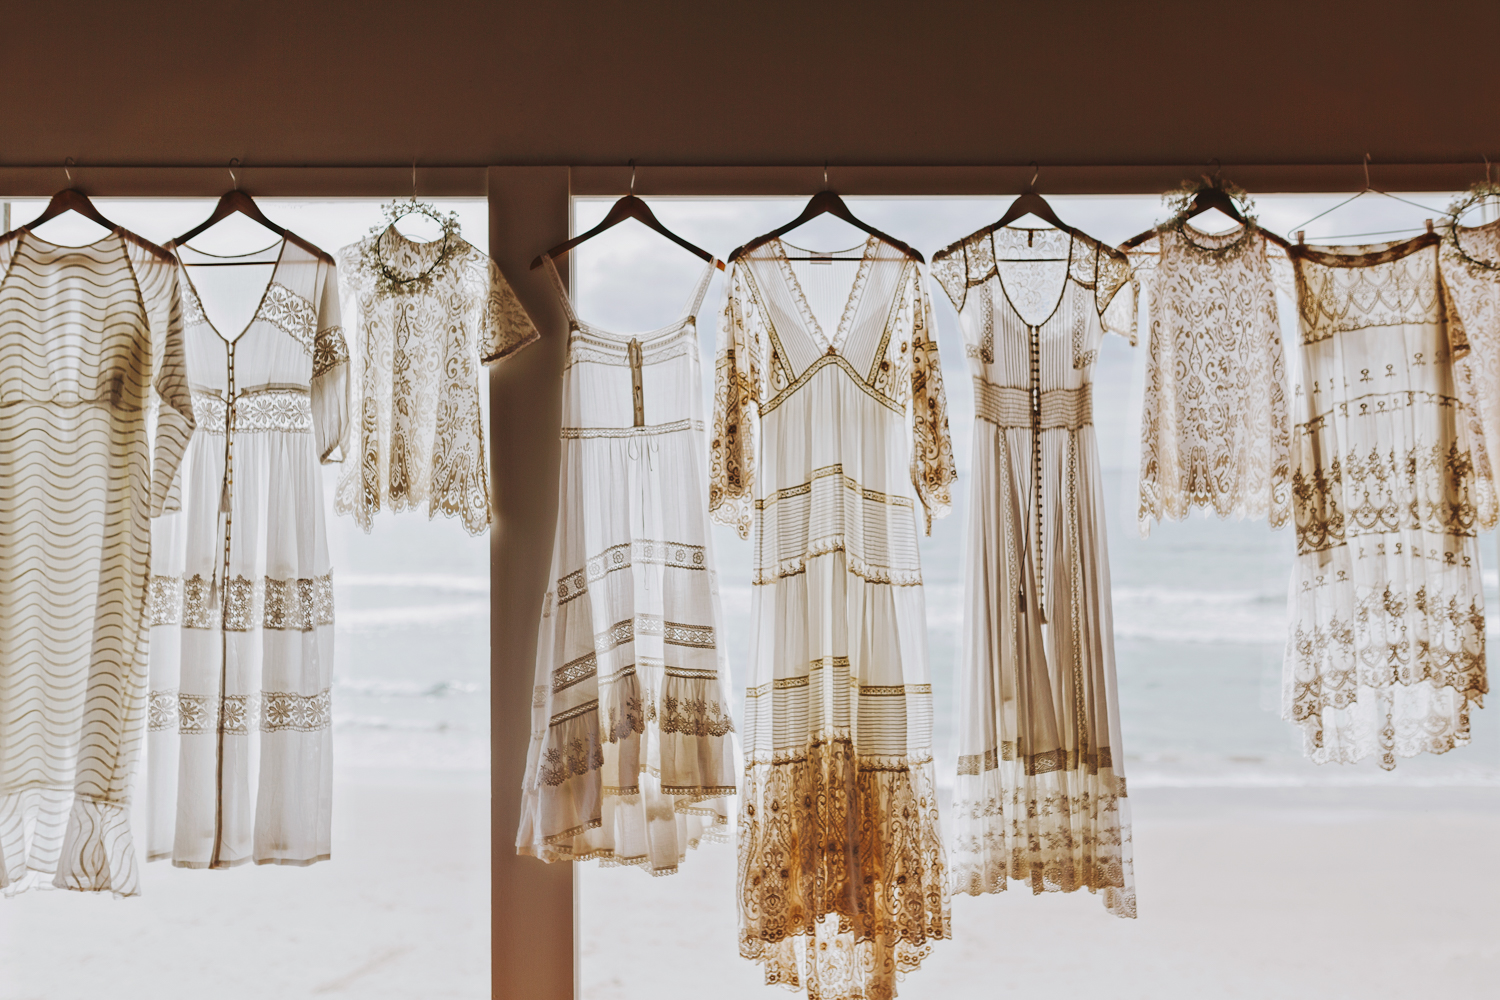 Beautiful Spell Designs wedding gowns hang at window.